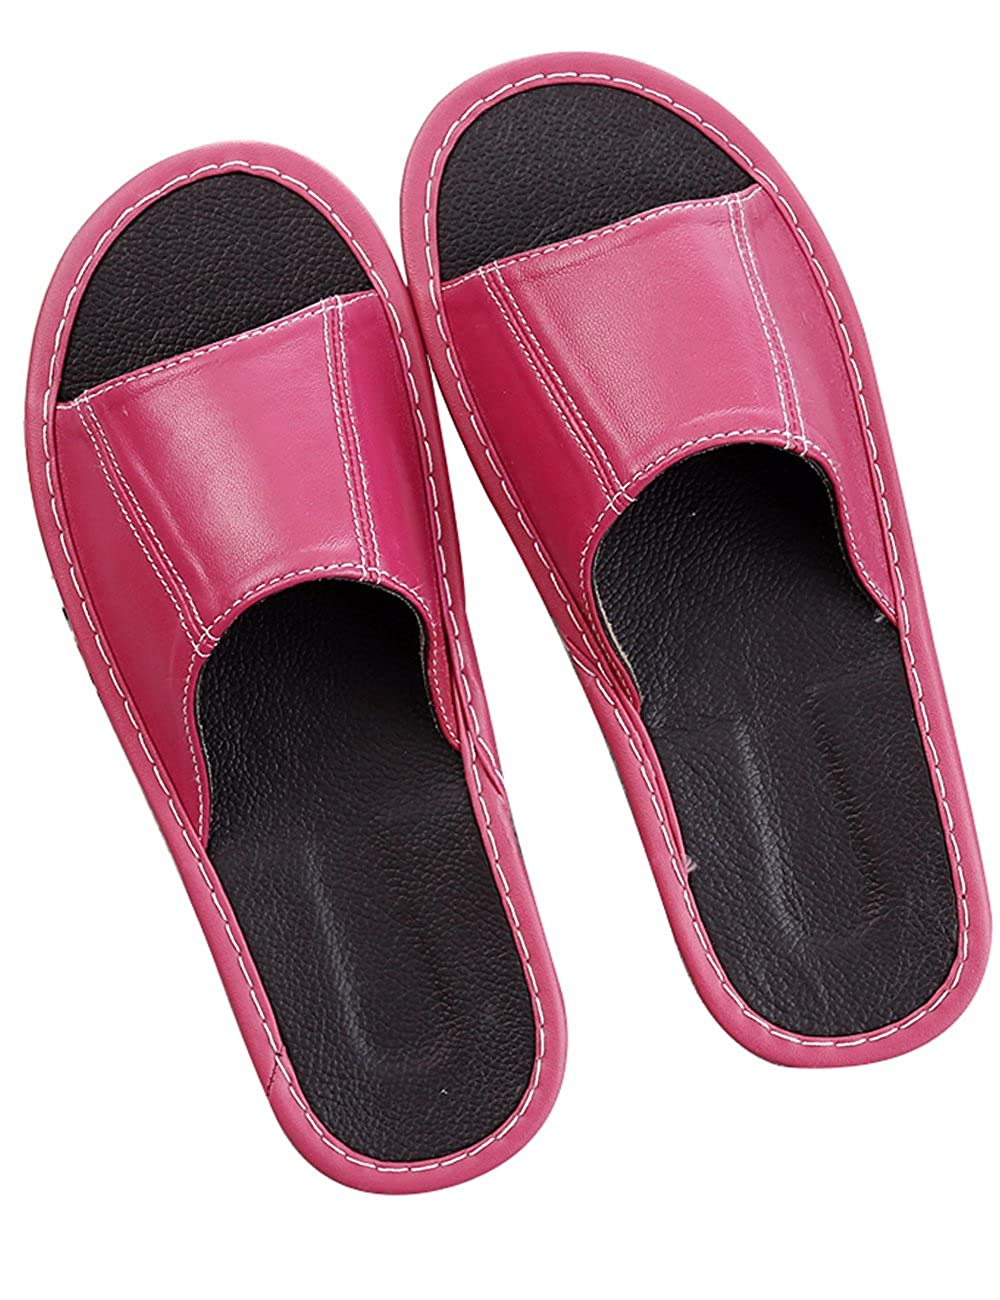 Zoulee Unisex Comfort House Indoor Slip On Leather Slippers Sweat-Absorbent Summer Slippers